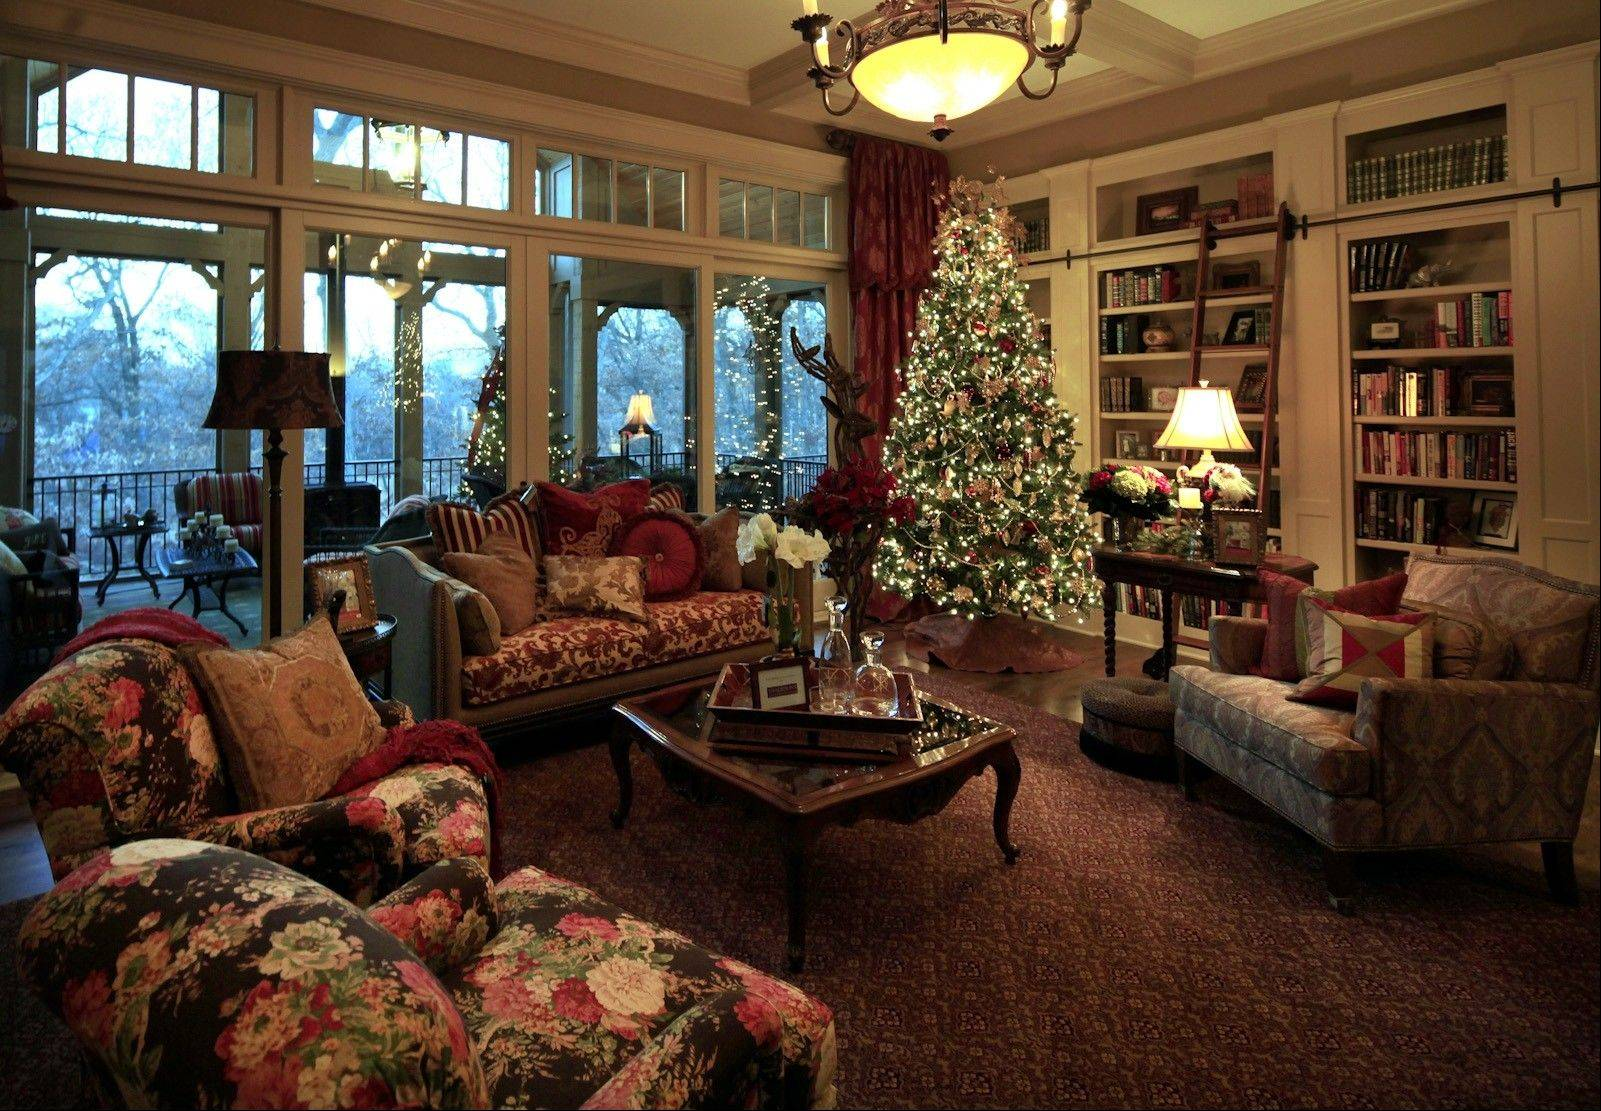 Designer Rhonda McElroy took cues from the jewel tones in the formal living room for holiday accessories.